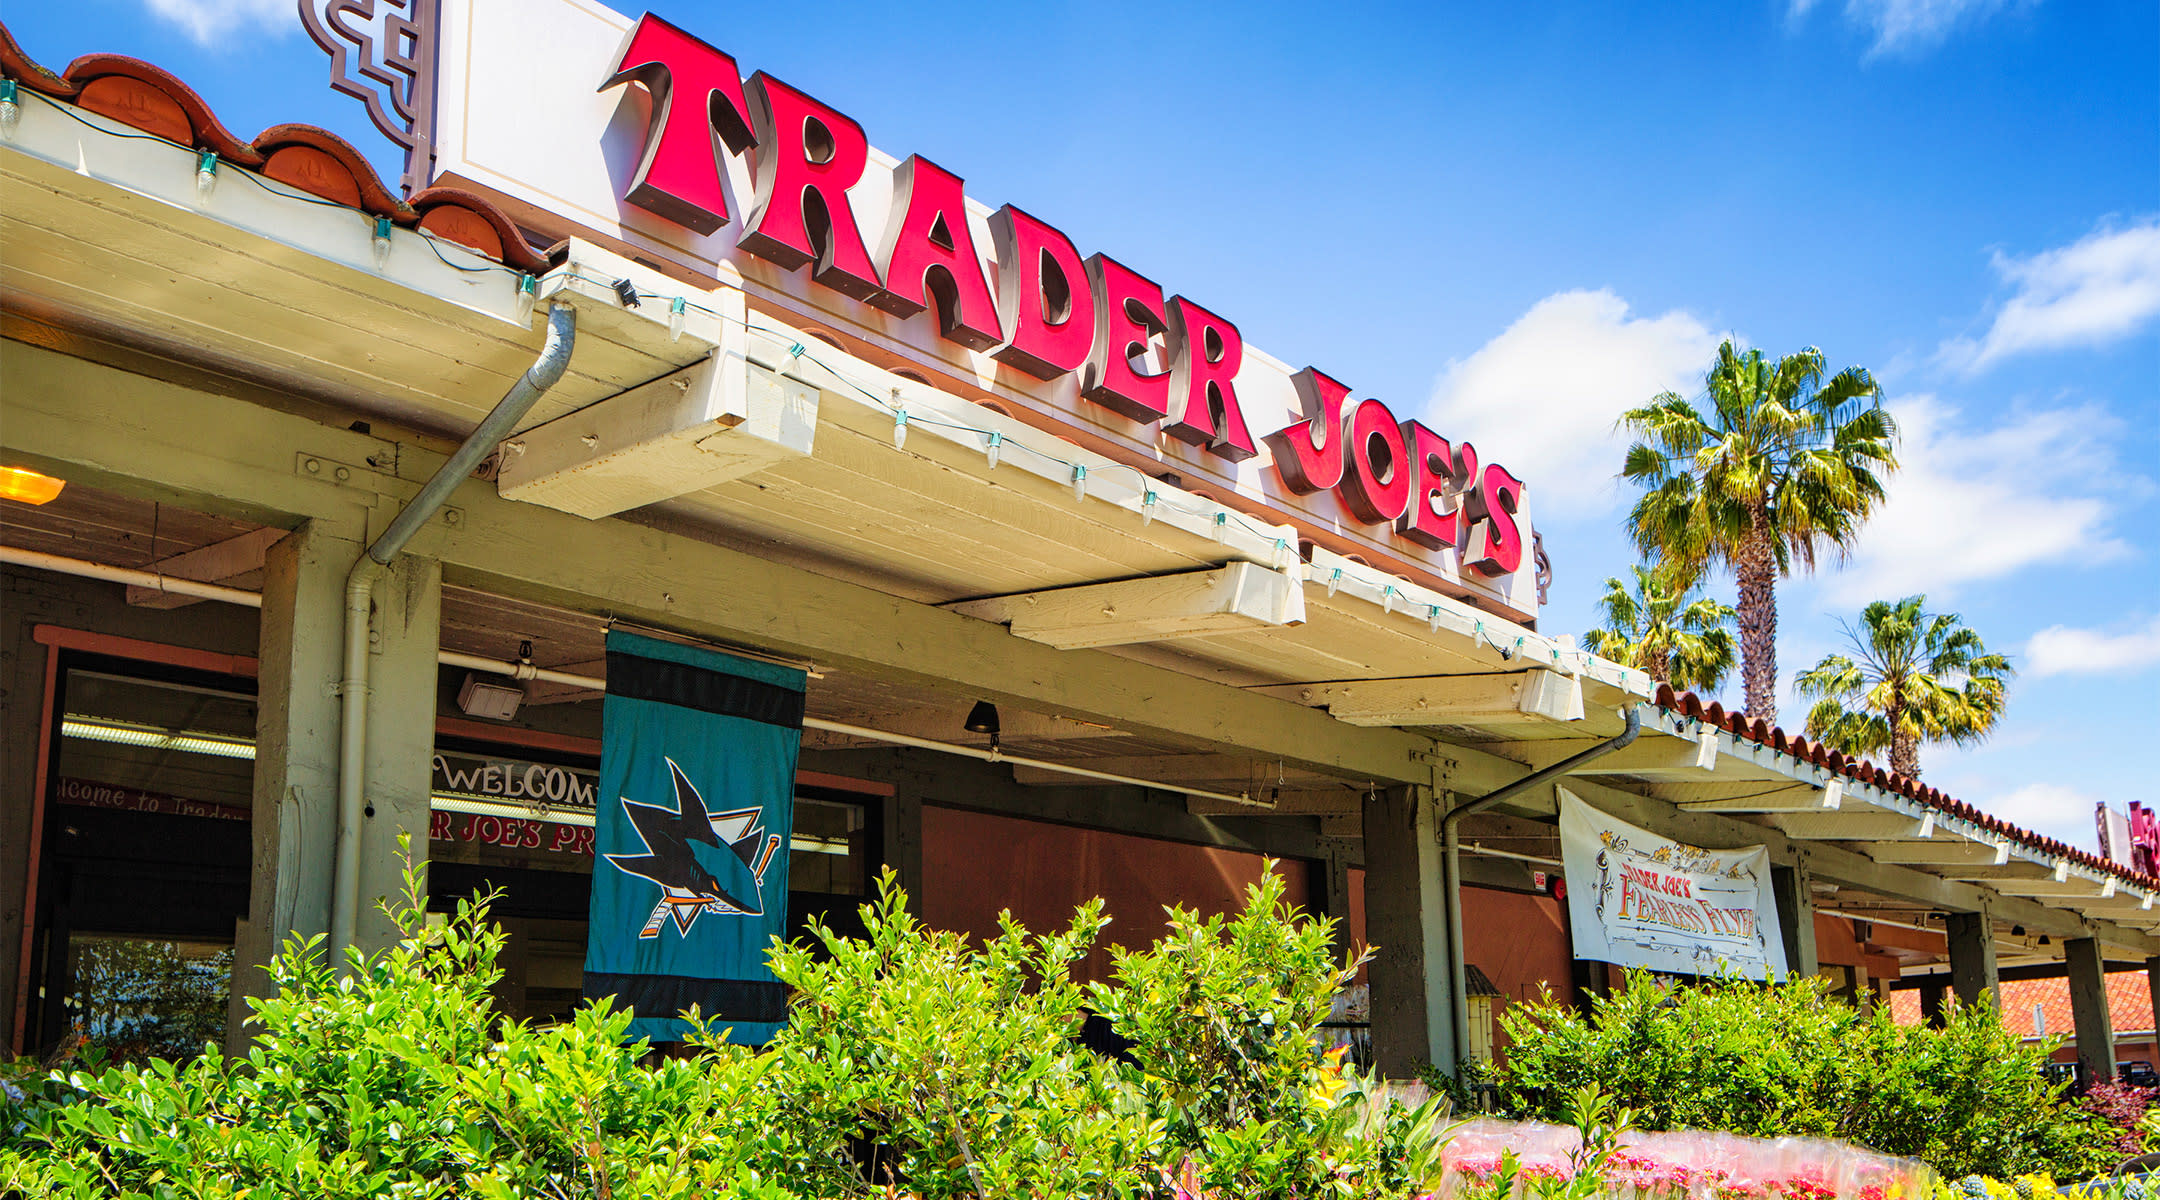 Trader Joe's Cashiers Go Above and Beyond for Parent Whose Toddler Is Mid-Tantrum